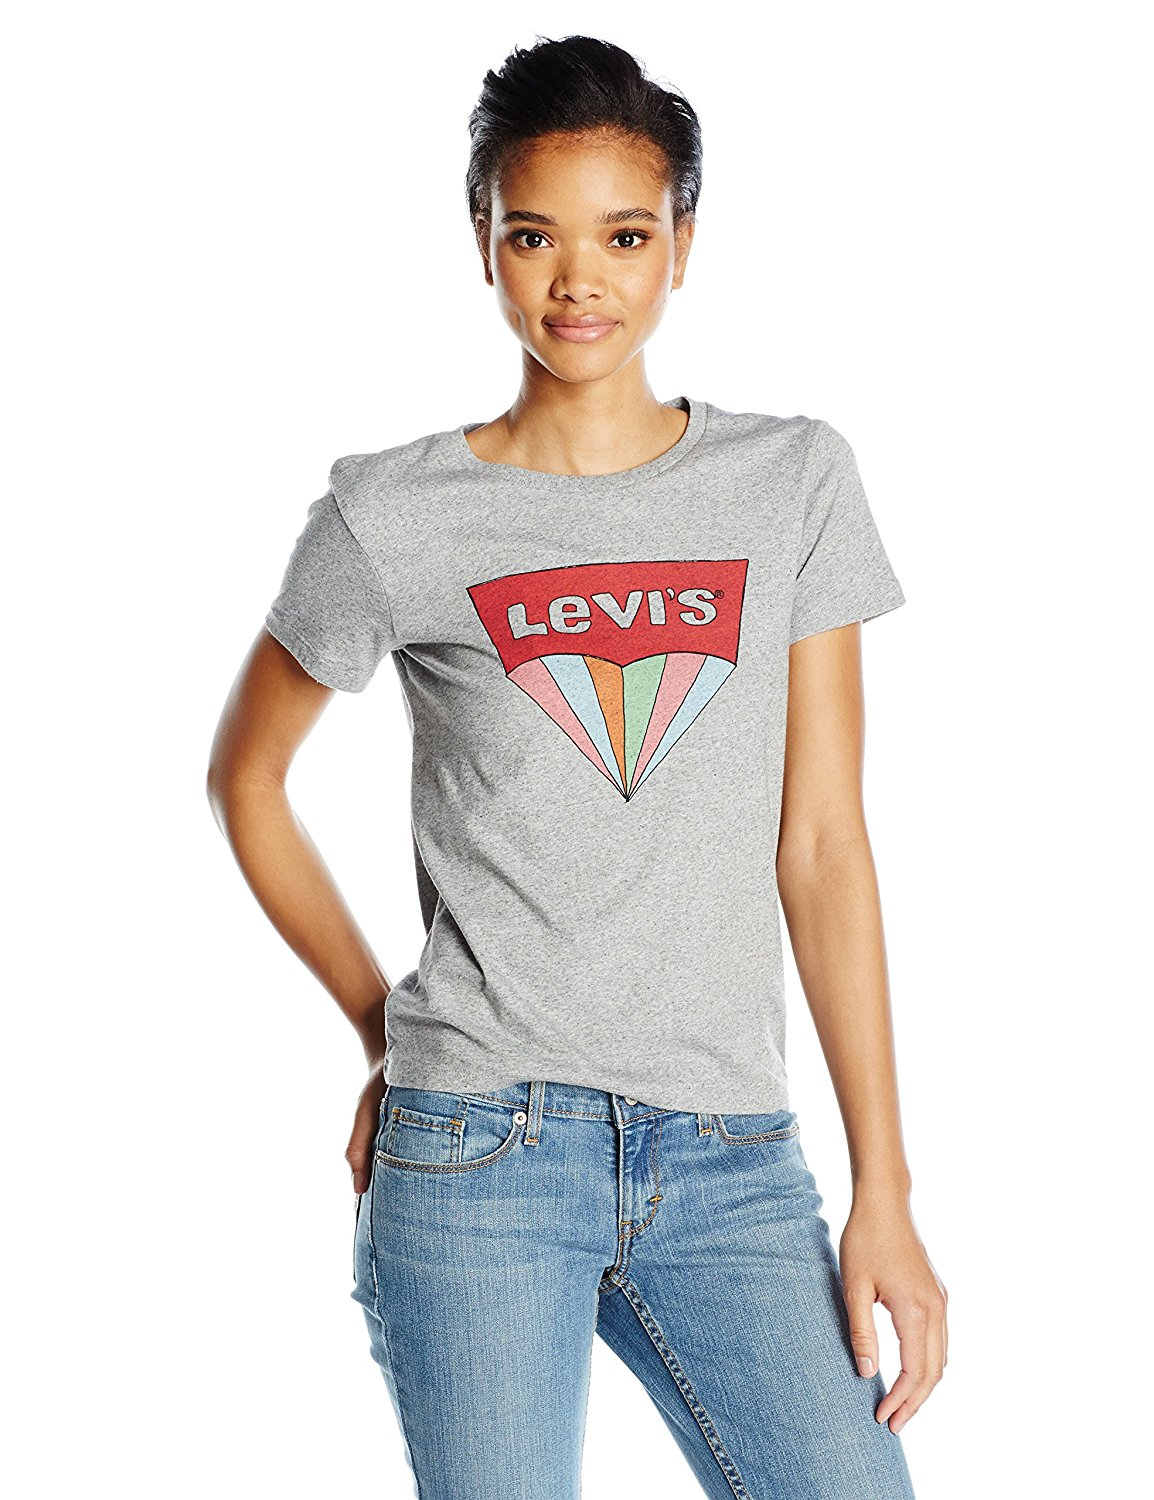 77db60b9 Levi's Women's Perfect Graphic Tee Shirt at Amazon Women's ...